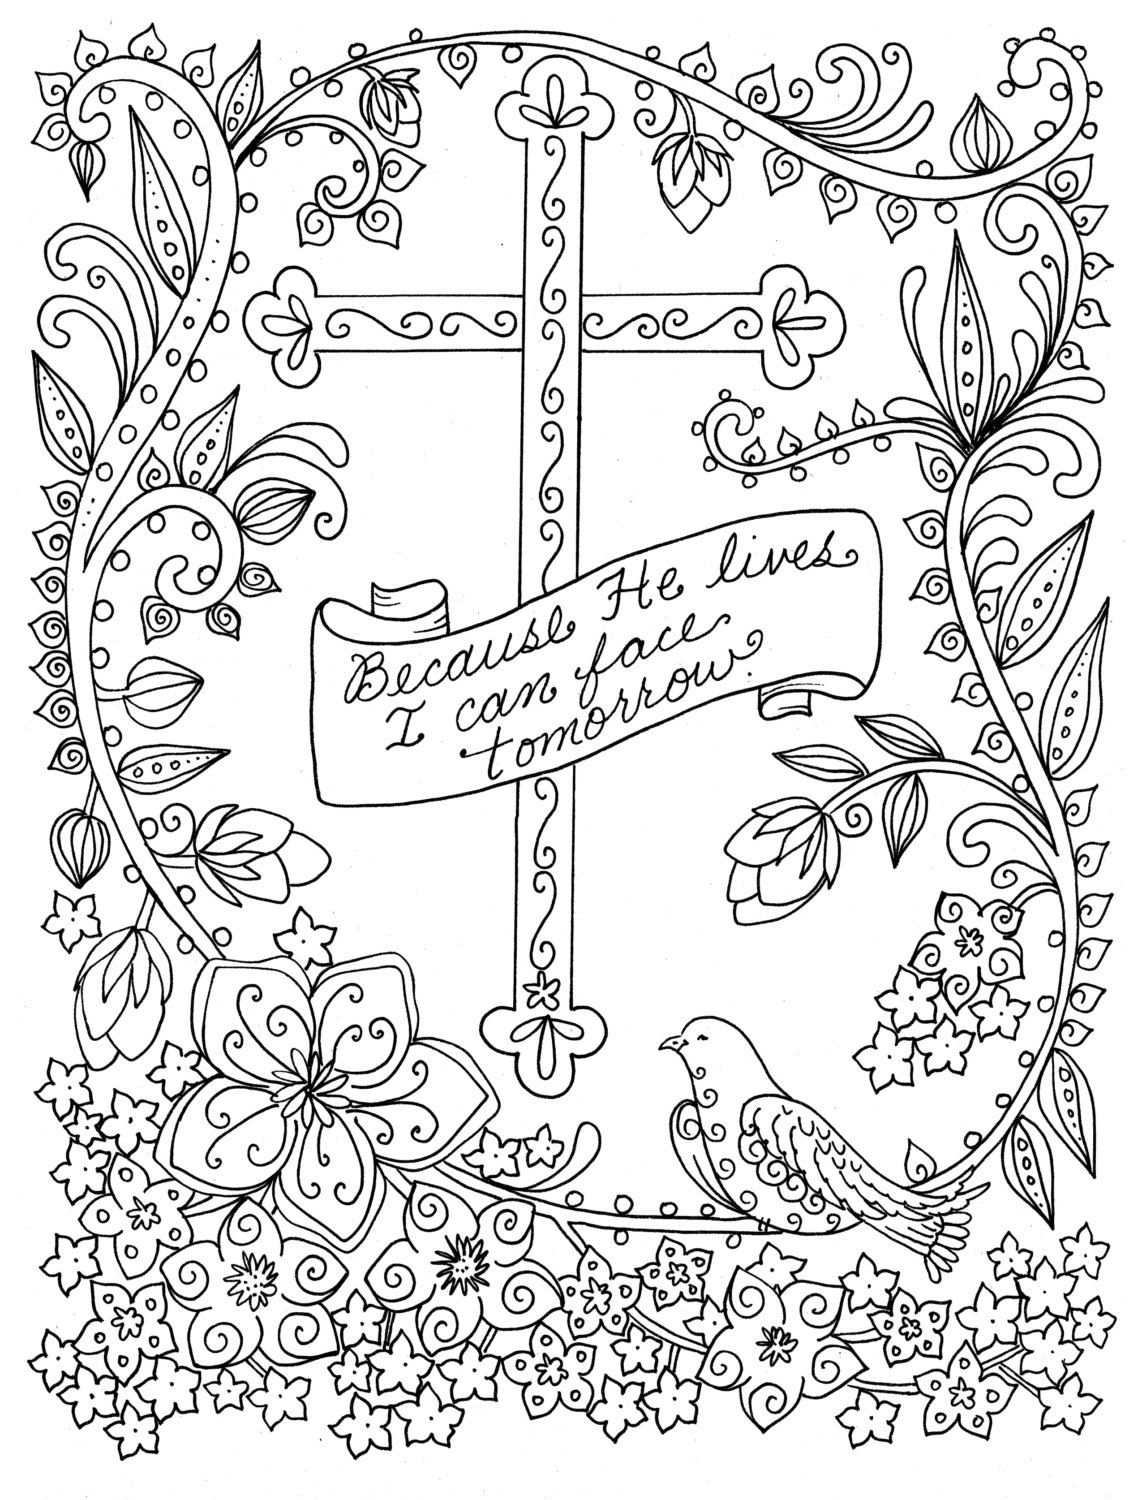 5 Digital Pages Of Crosses To Color Instant Download Digi Etsy In 2020 Bible Coloring Pages Bible Verse Coloring Page Easter Coloring Pages